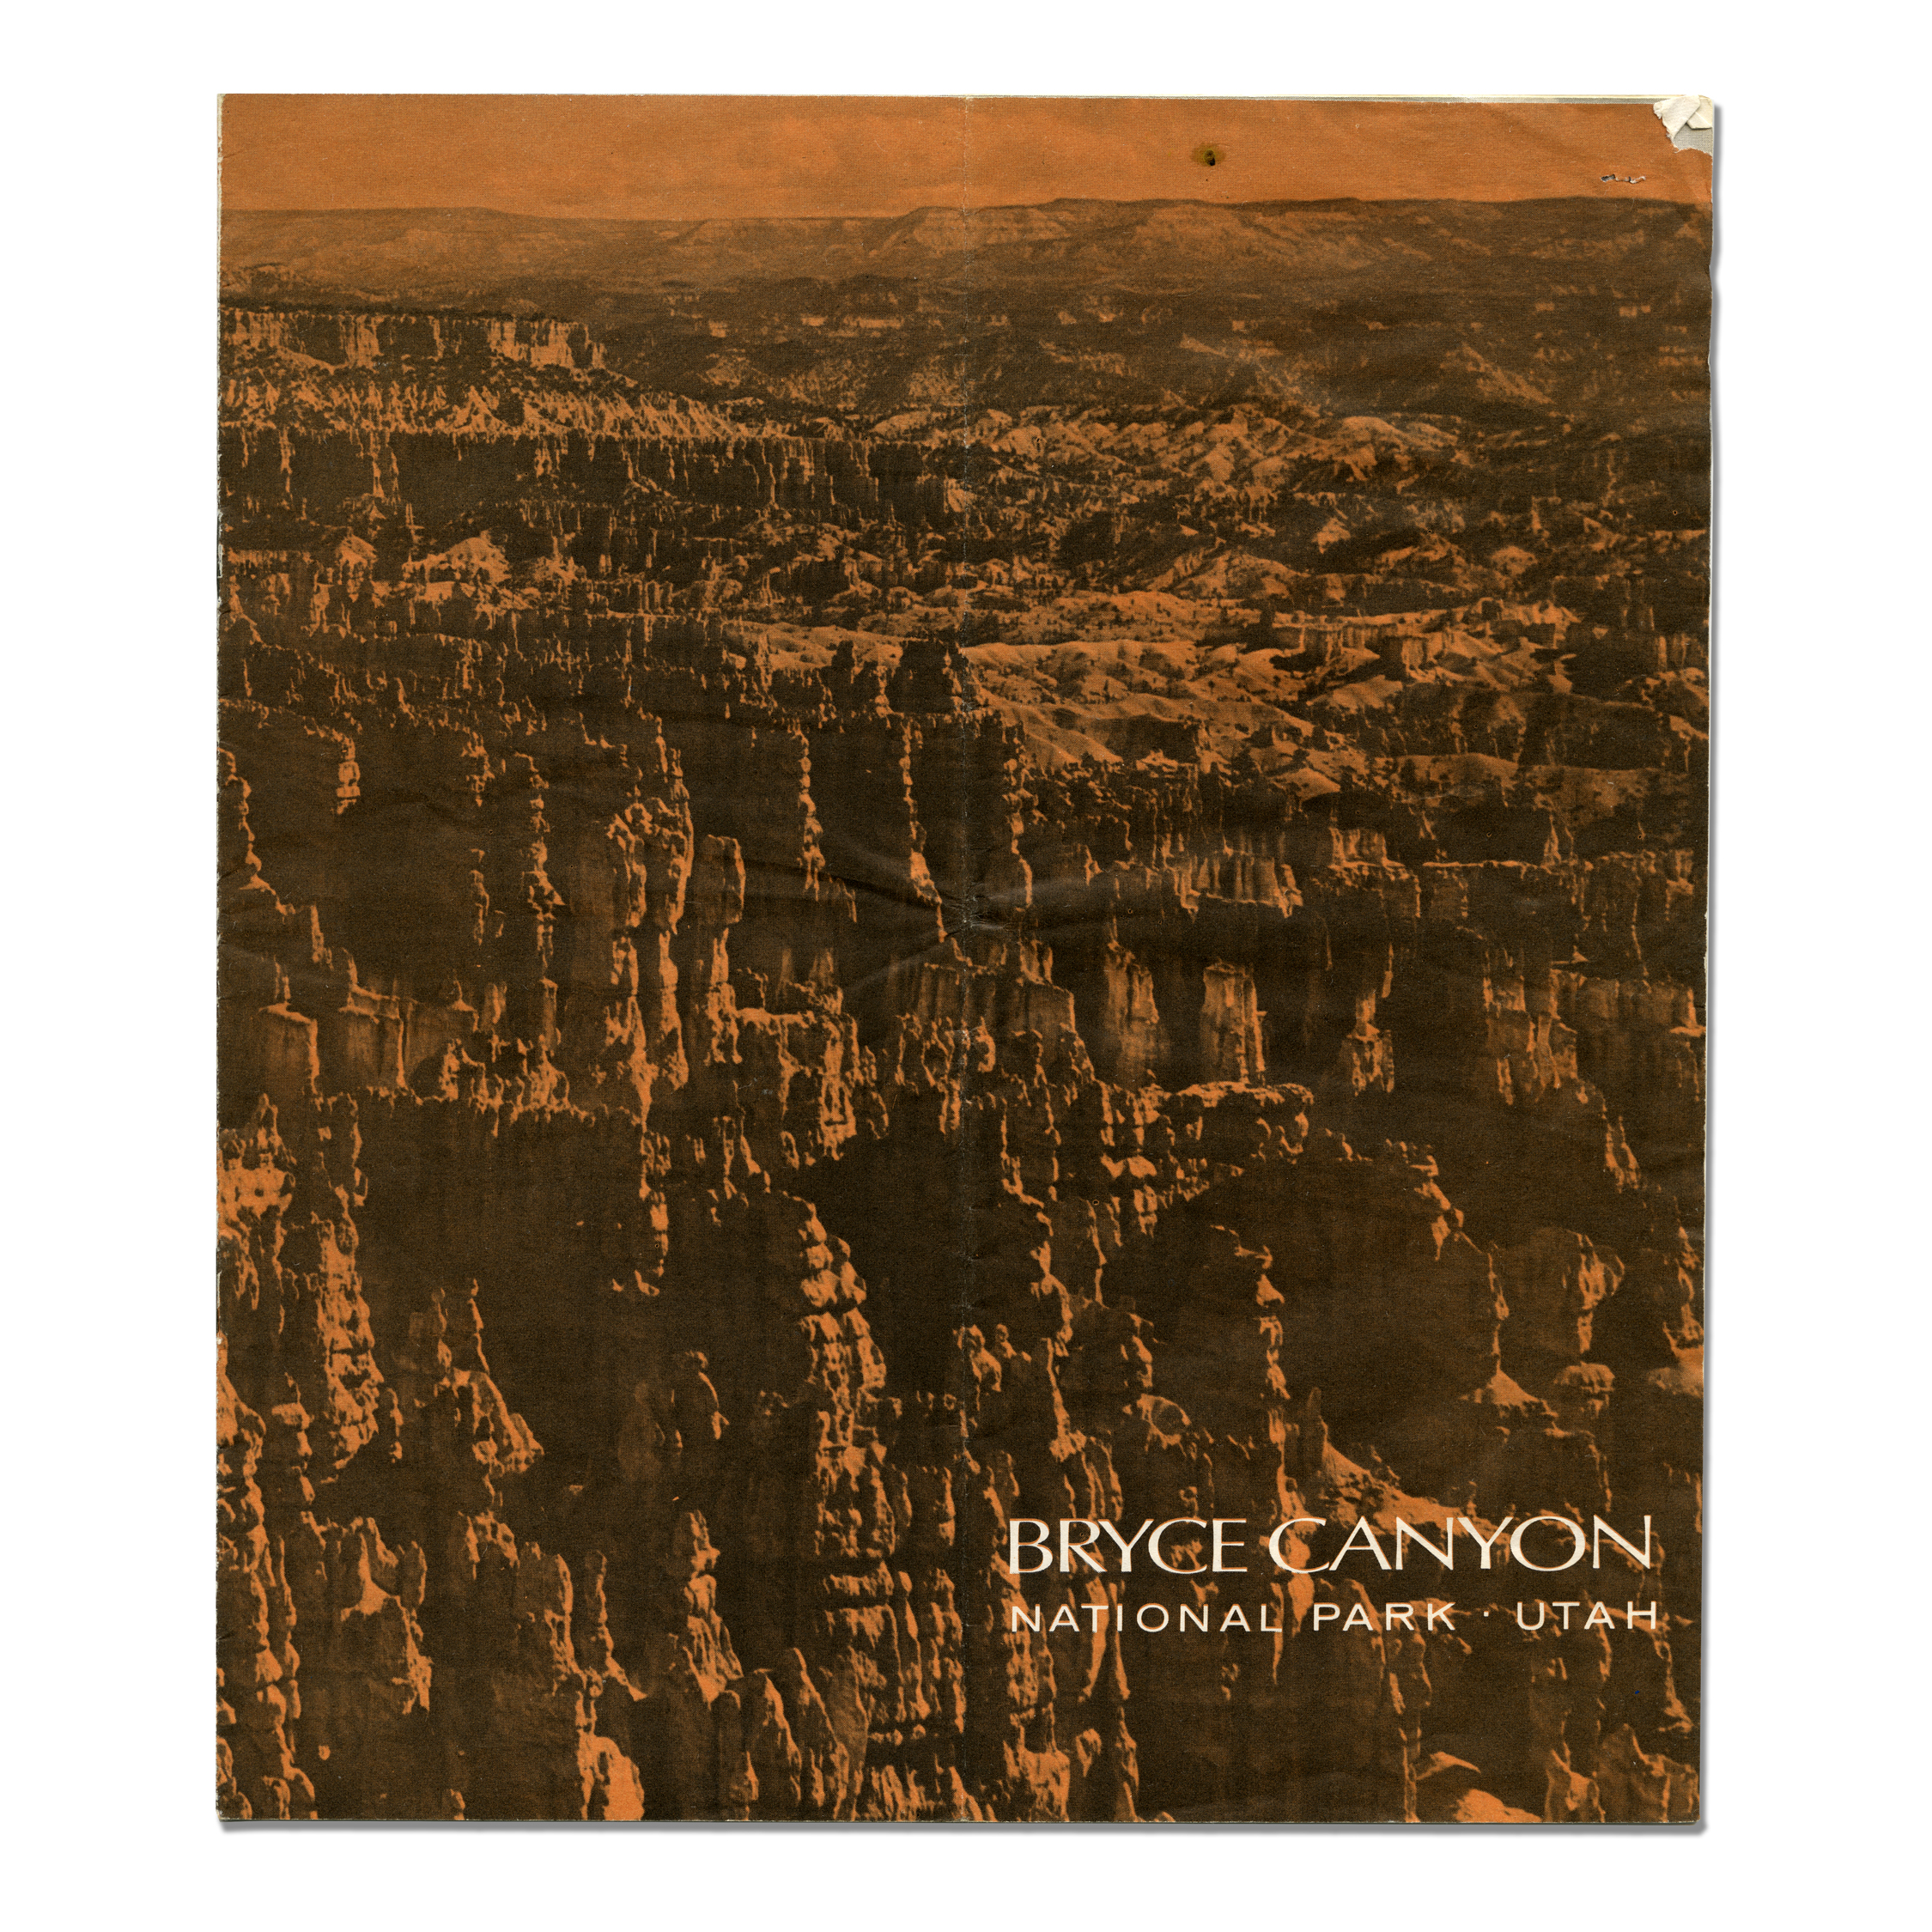 1957_bryce_canyon_national_park_brochure.jpg